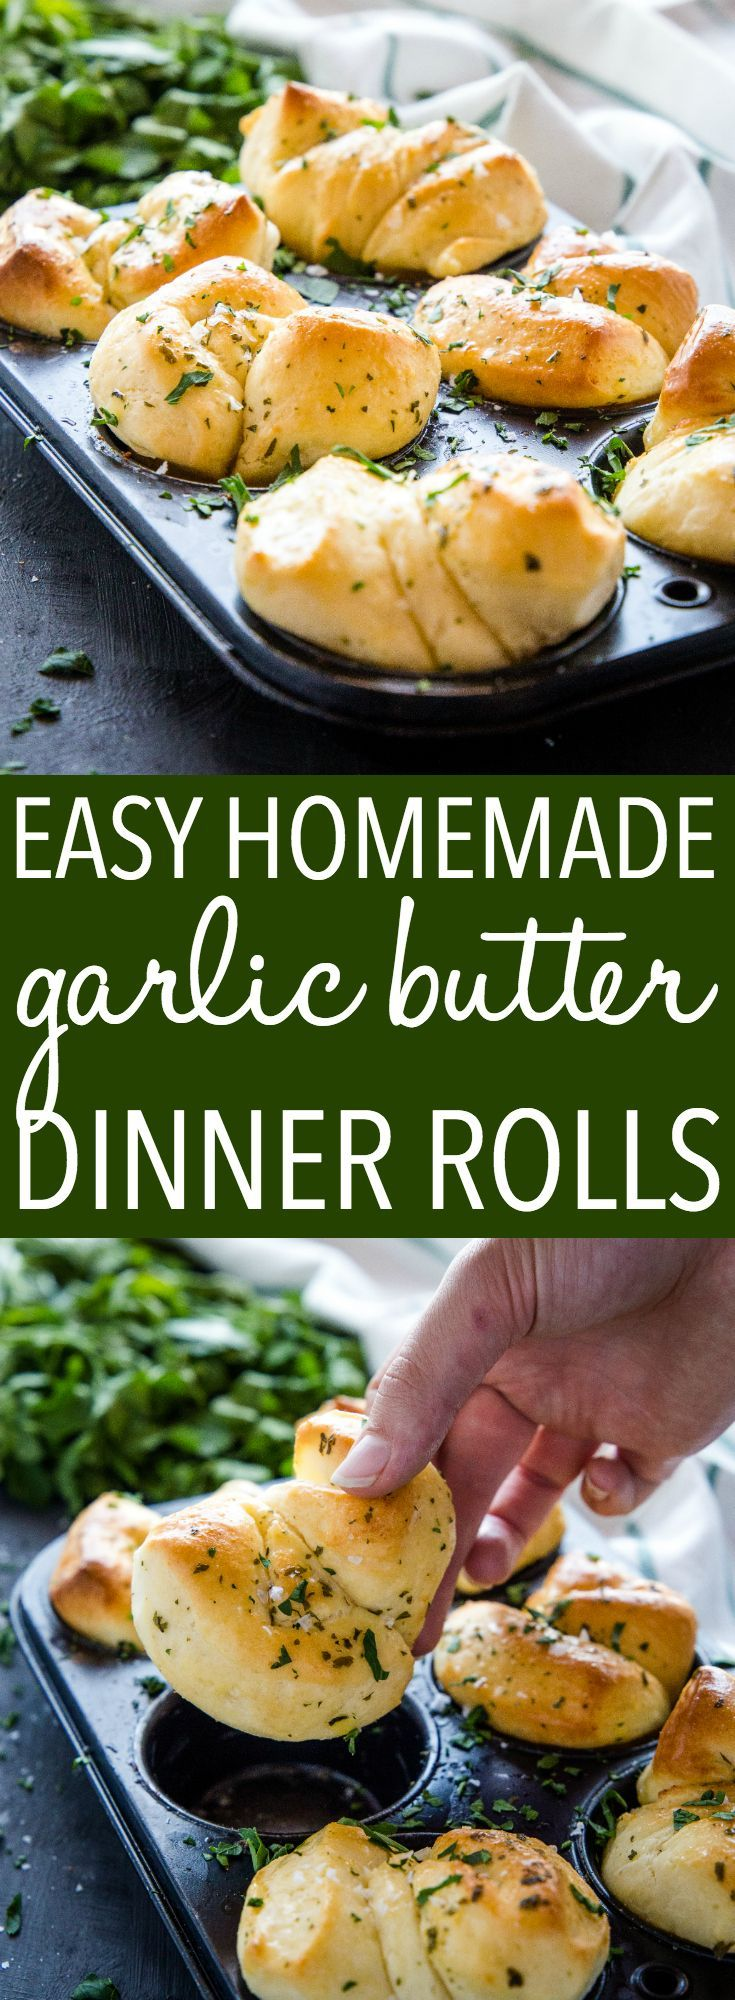 Easy Homemade Garlic Butter Dinner Rolls images